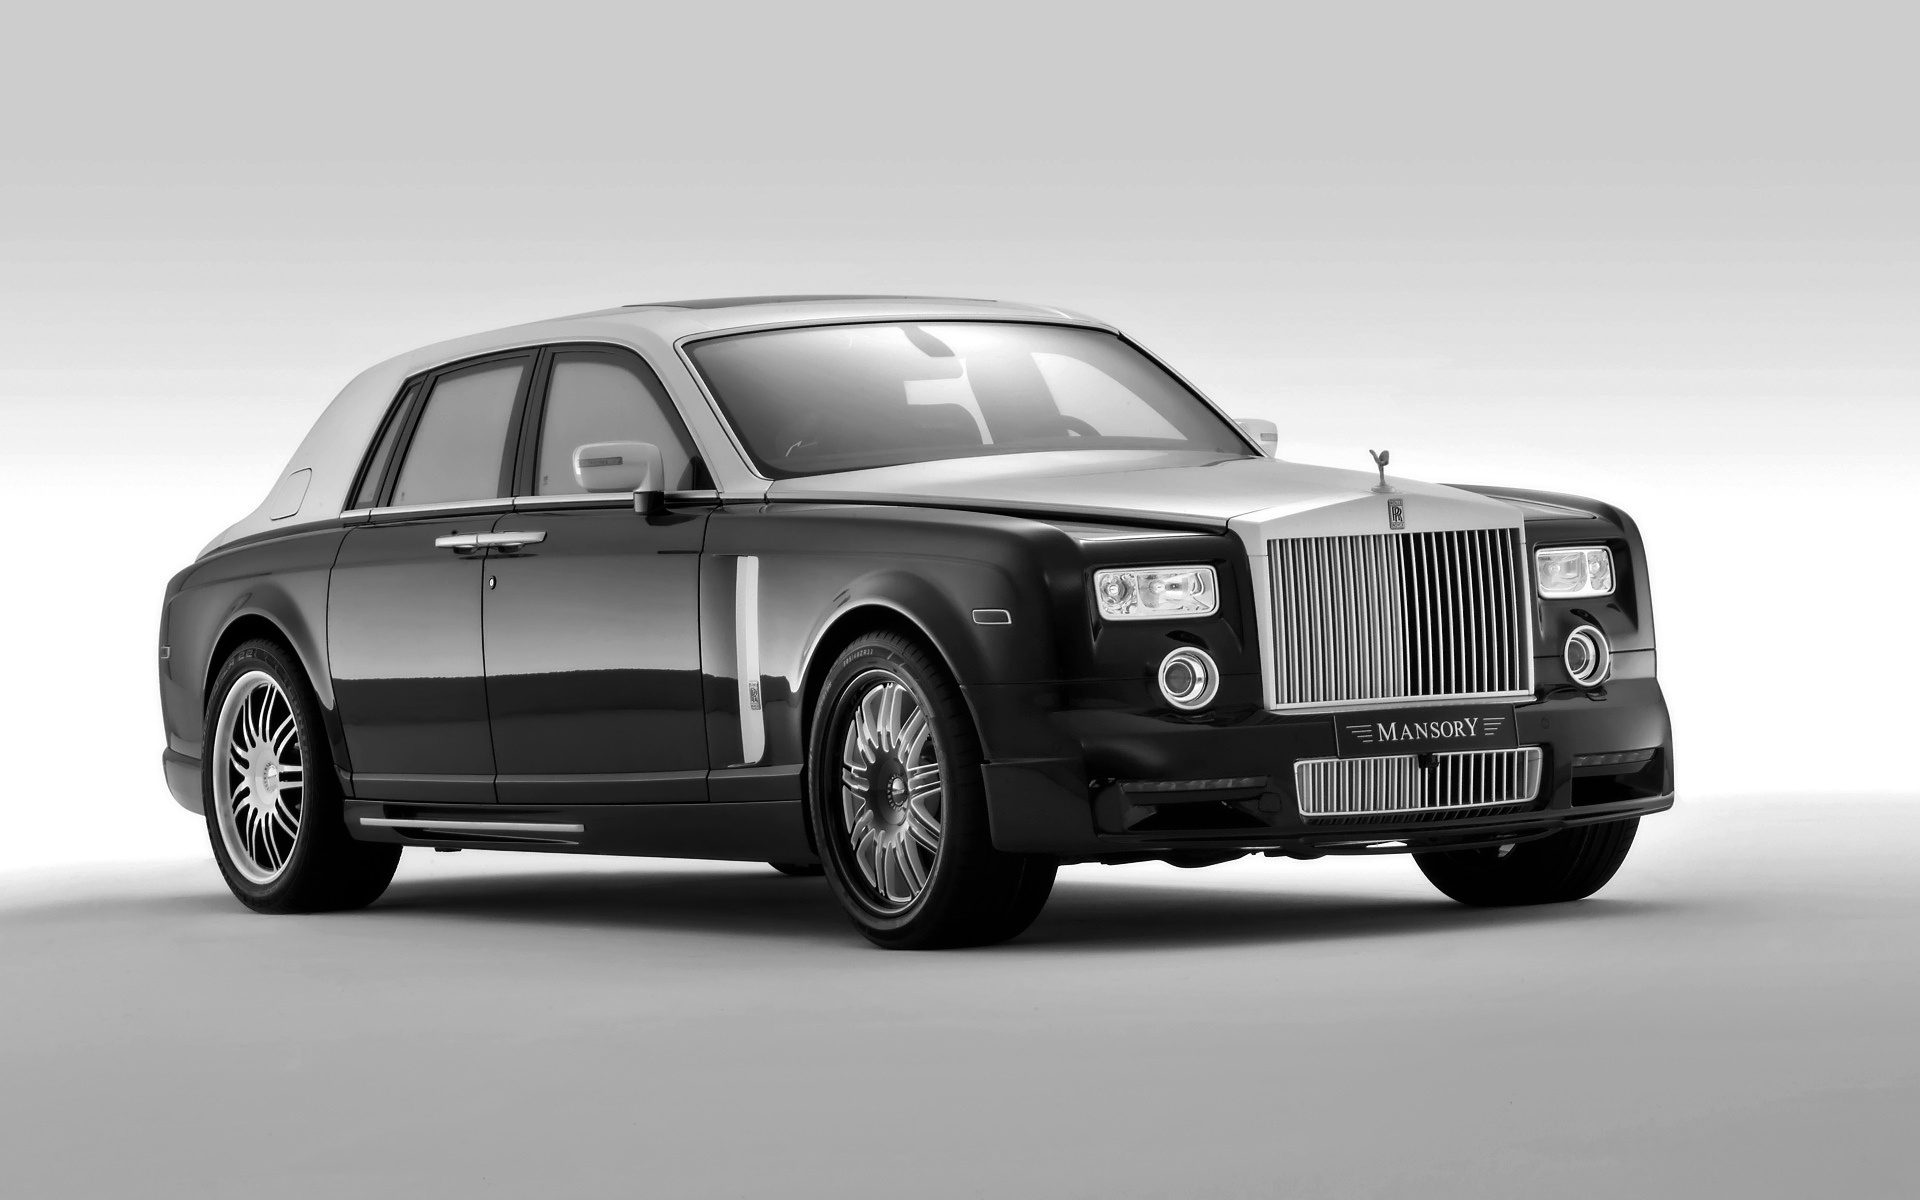 Mansory Rolls Royce Phantom Conquistador for 1920 x 1200 widescreen resolution